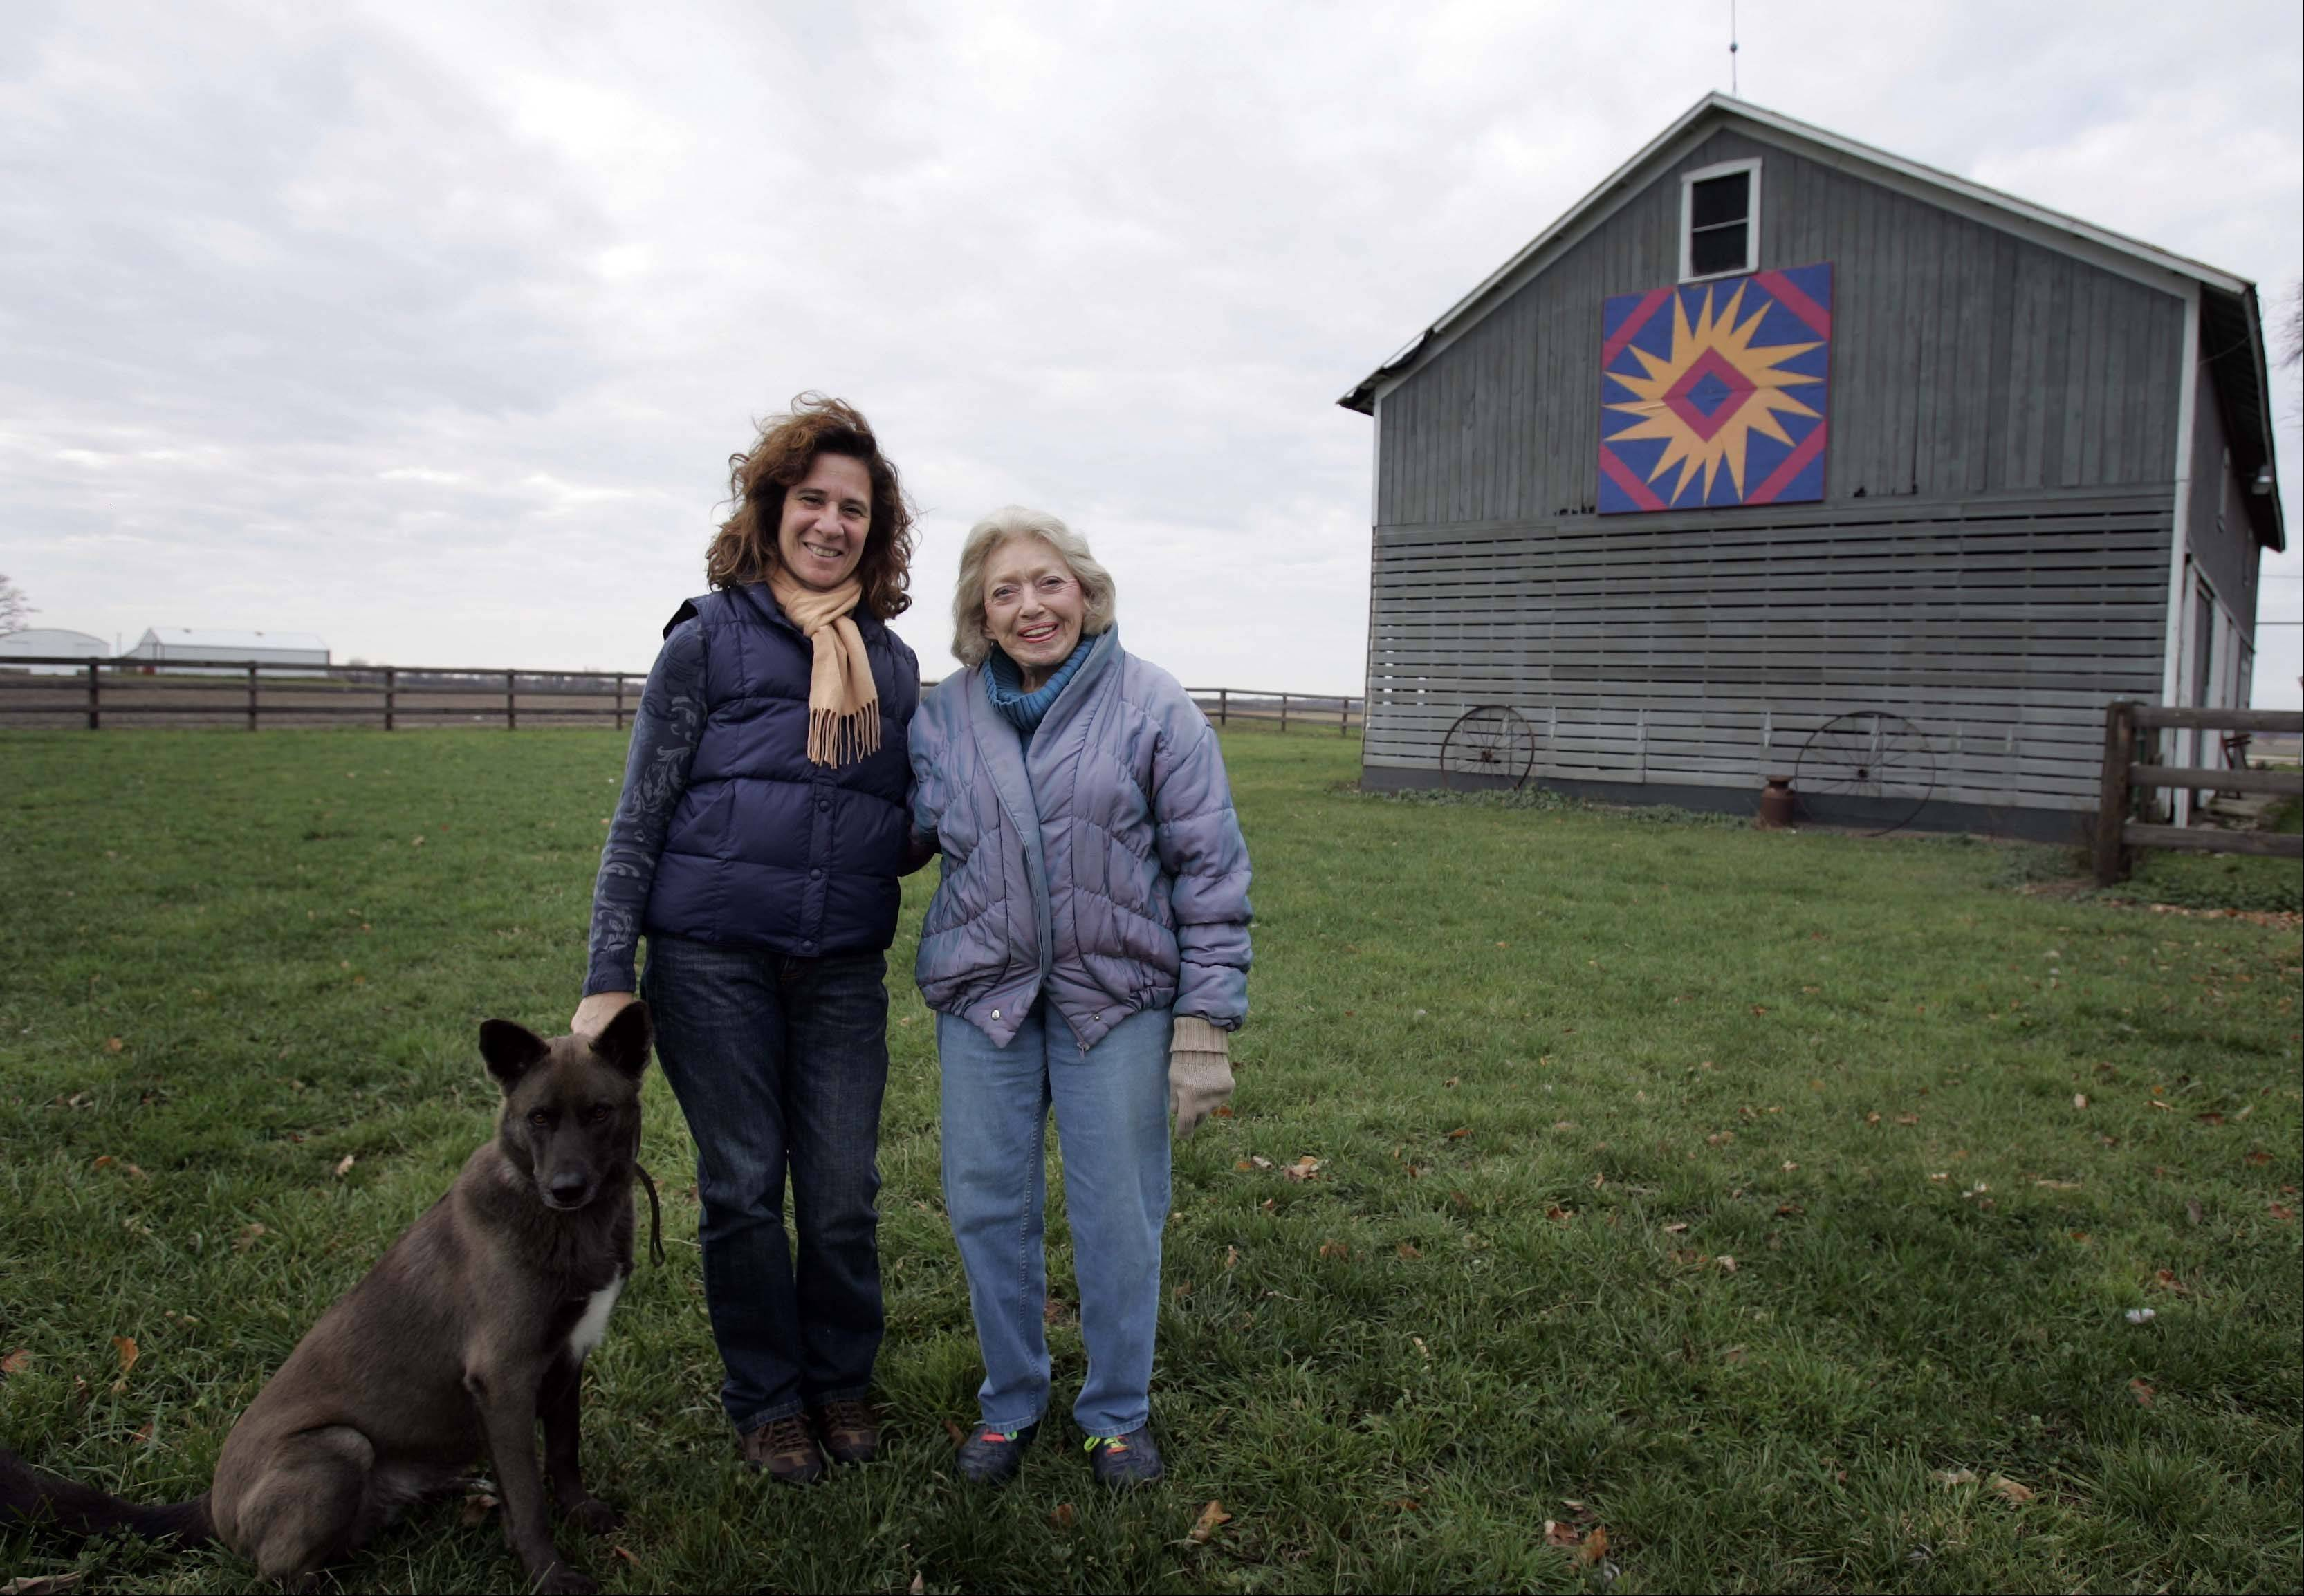 Angela Beestra, left, with Nancy Wicker of Harvard, who together installed the quilted barn panel on Beestra's Harvard farm. Beestra's dog Lilly is also pictured.